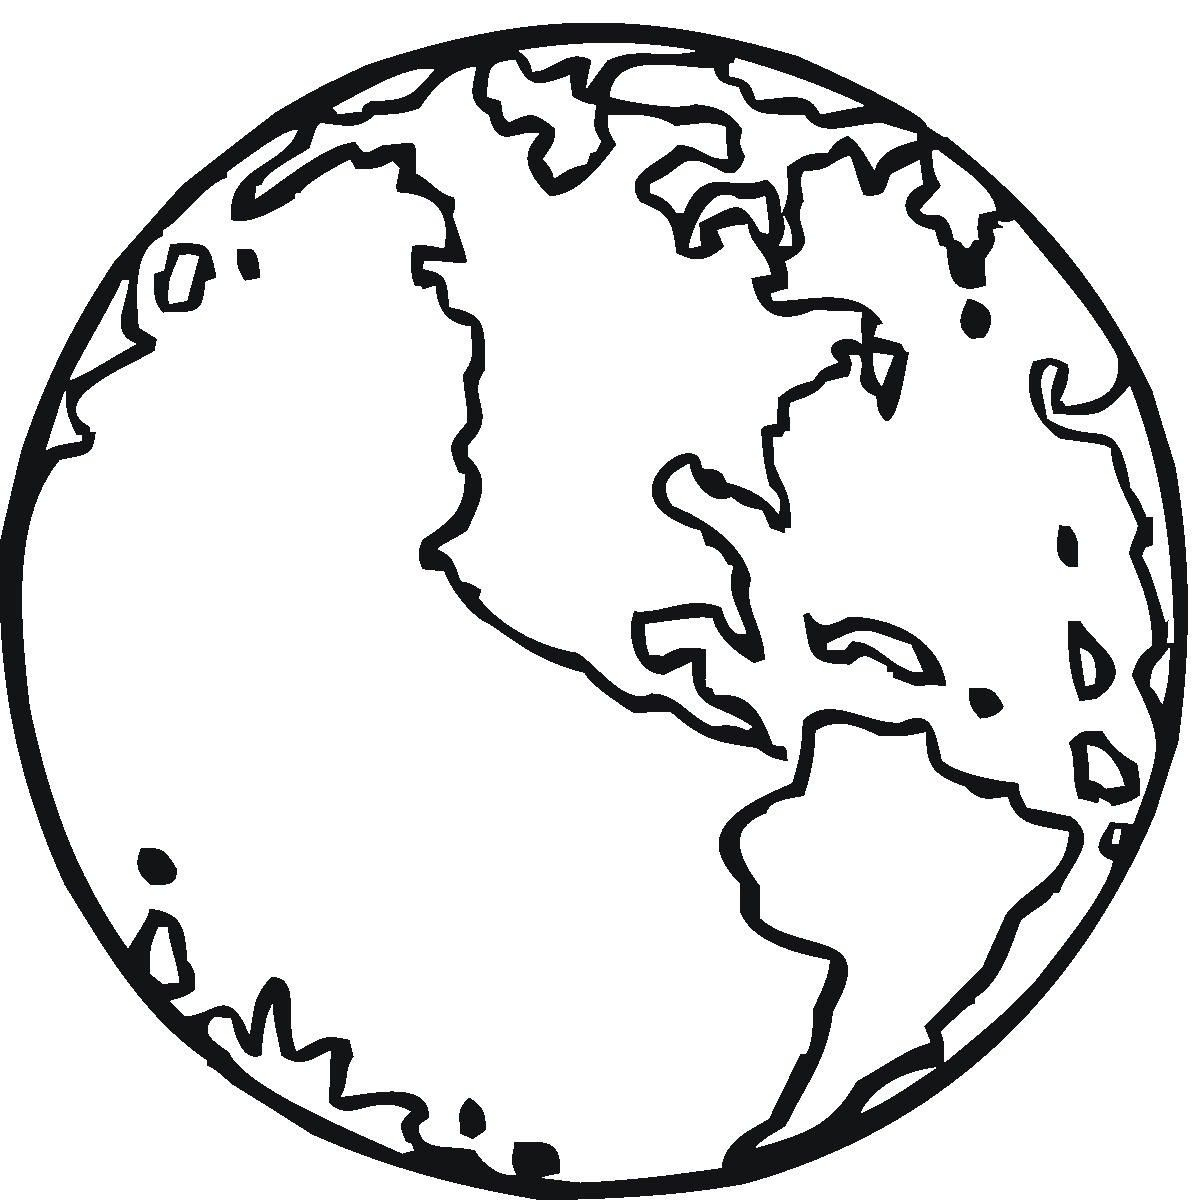 Free Printable Earth Coloring Pages For Kids   Stuff   Pinterest - Earth Coloring Pages Free Printable